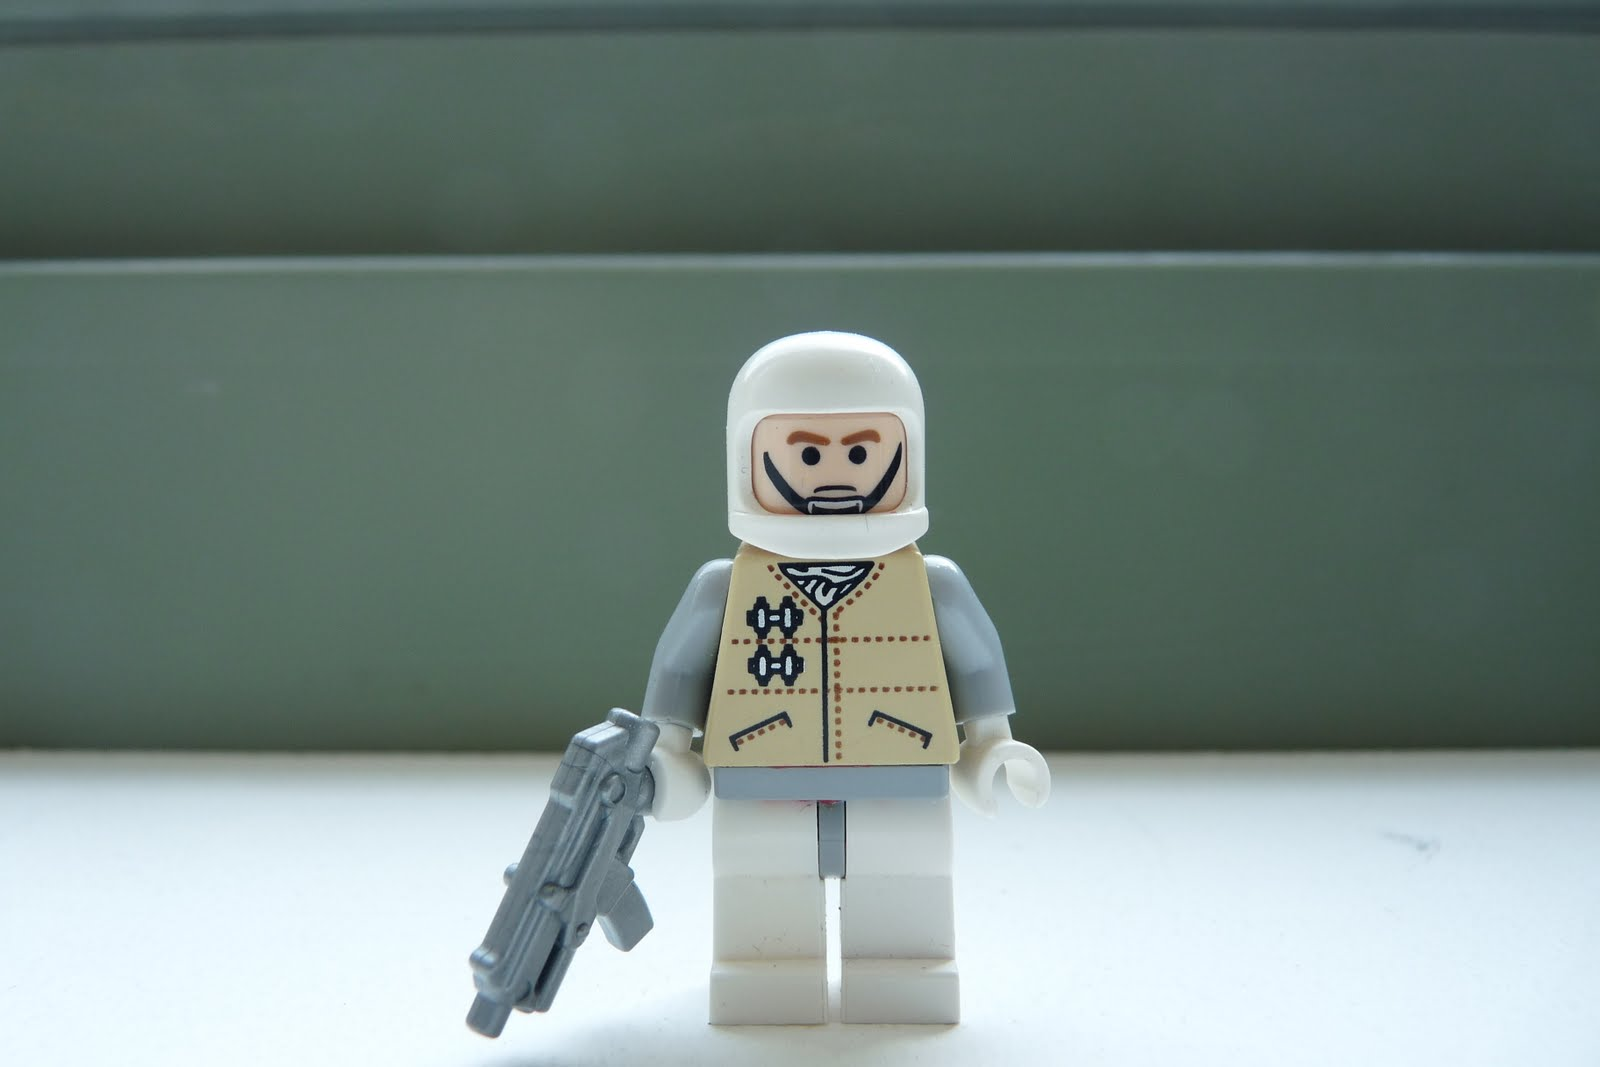 scout lego 2010